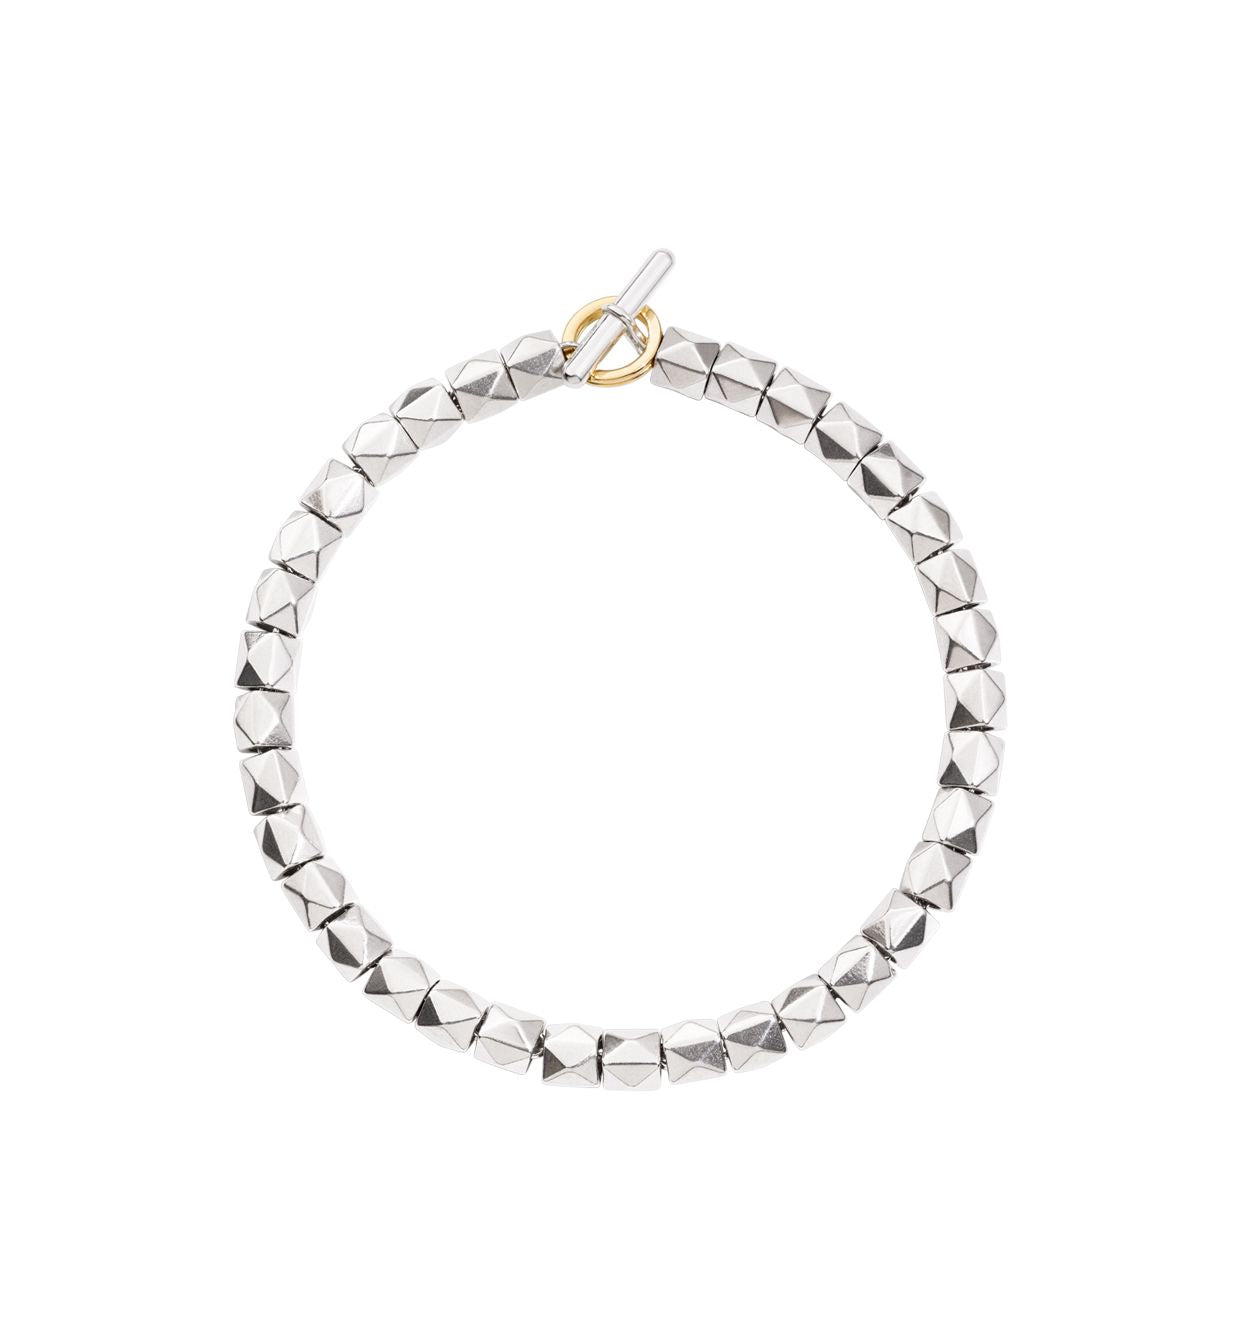 DoDo Stud Bracelet Kit in Silver with Yellow Gold Brise Ring - Orsini Jewellers NZ